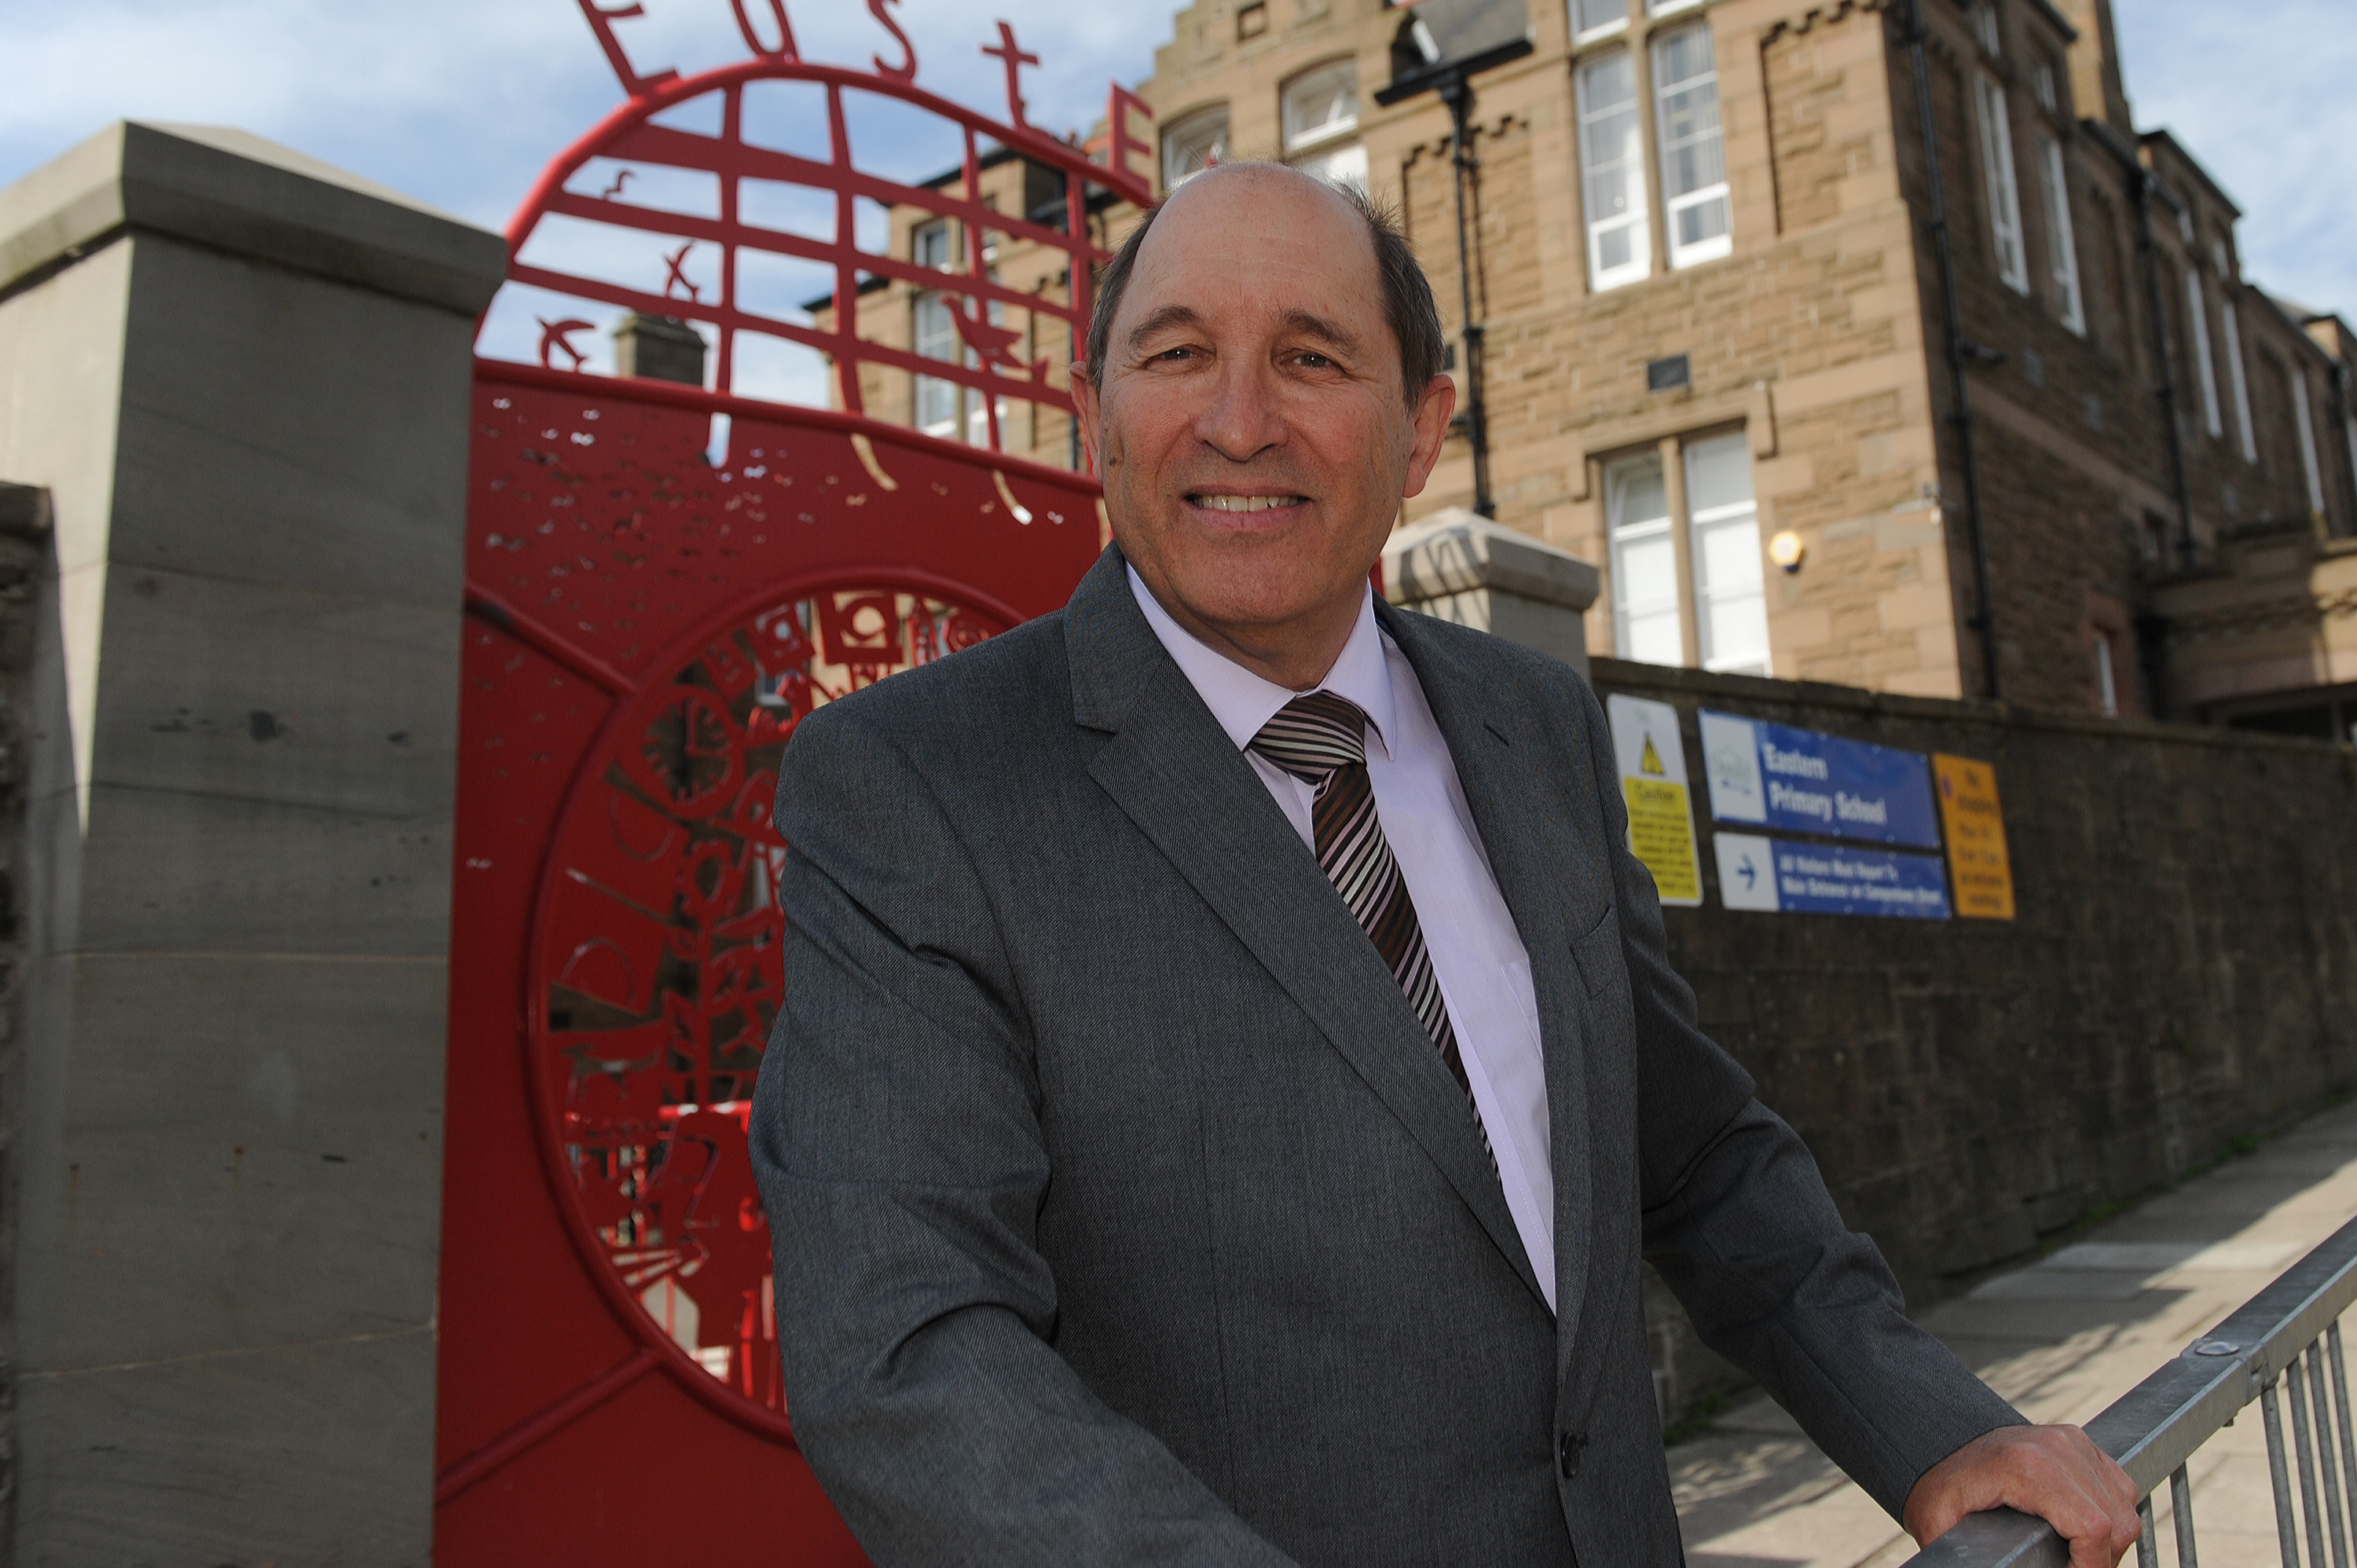 Mr Bidwell wants pupils to report concerns over offensive weapons in schools.